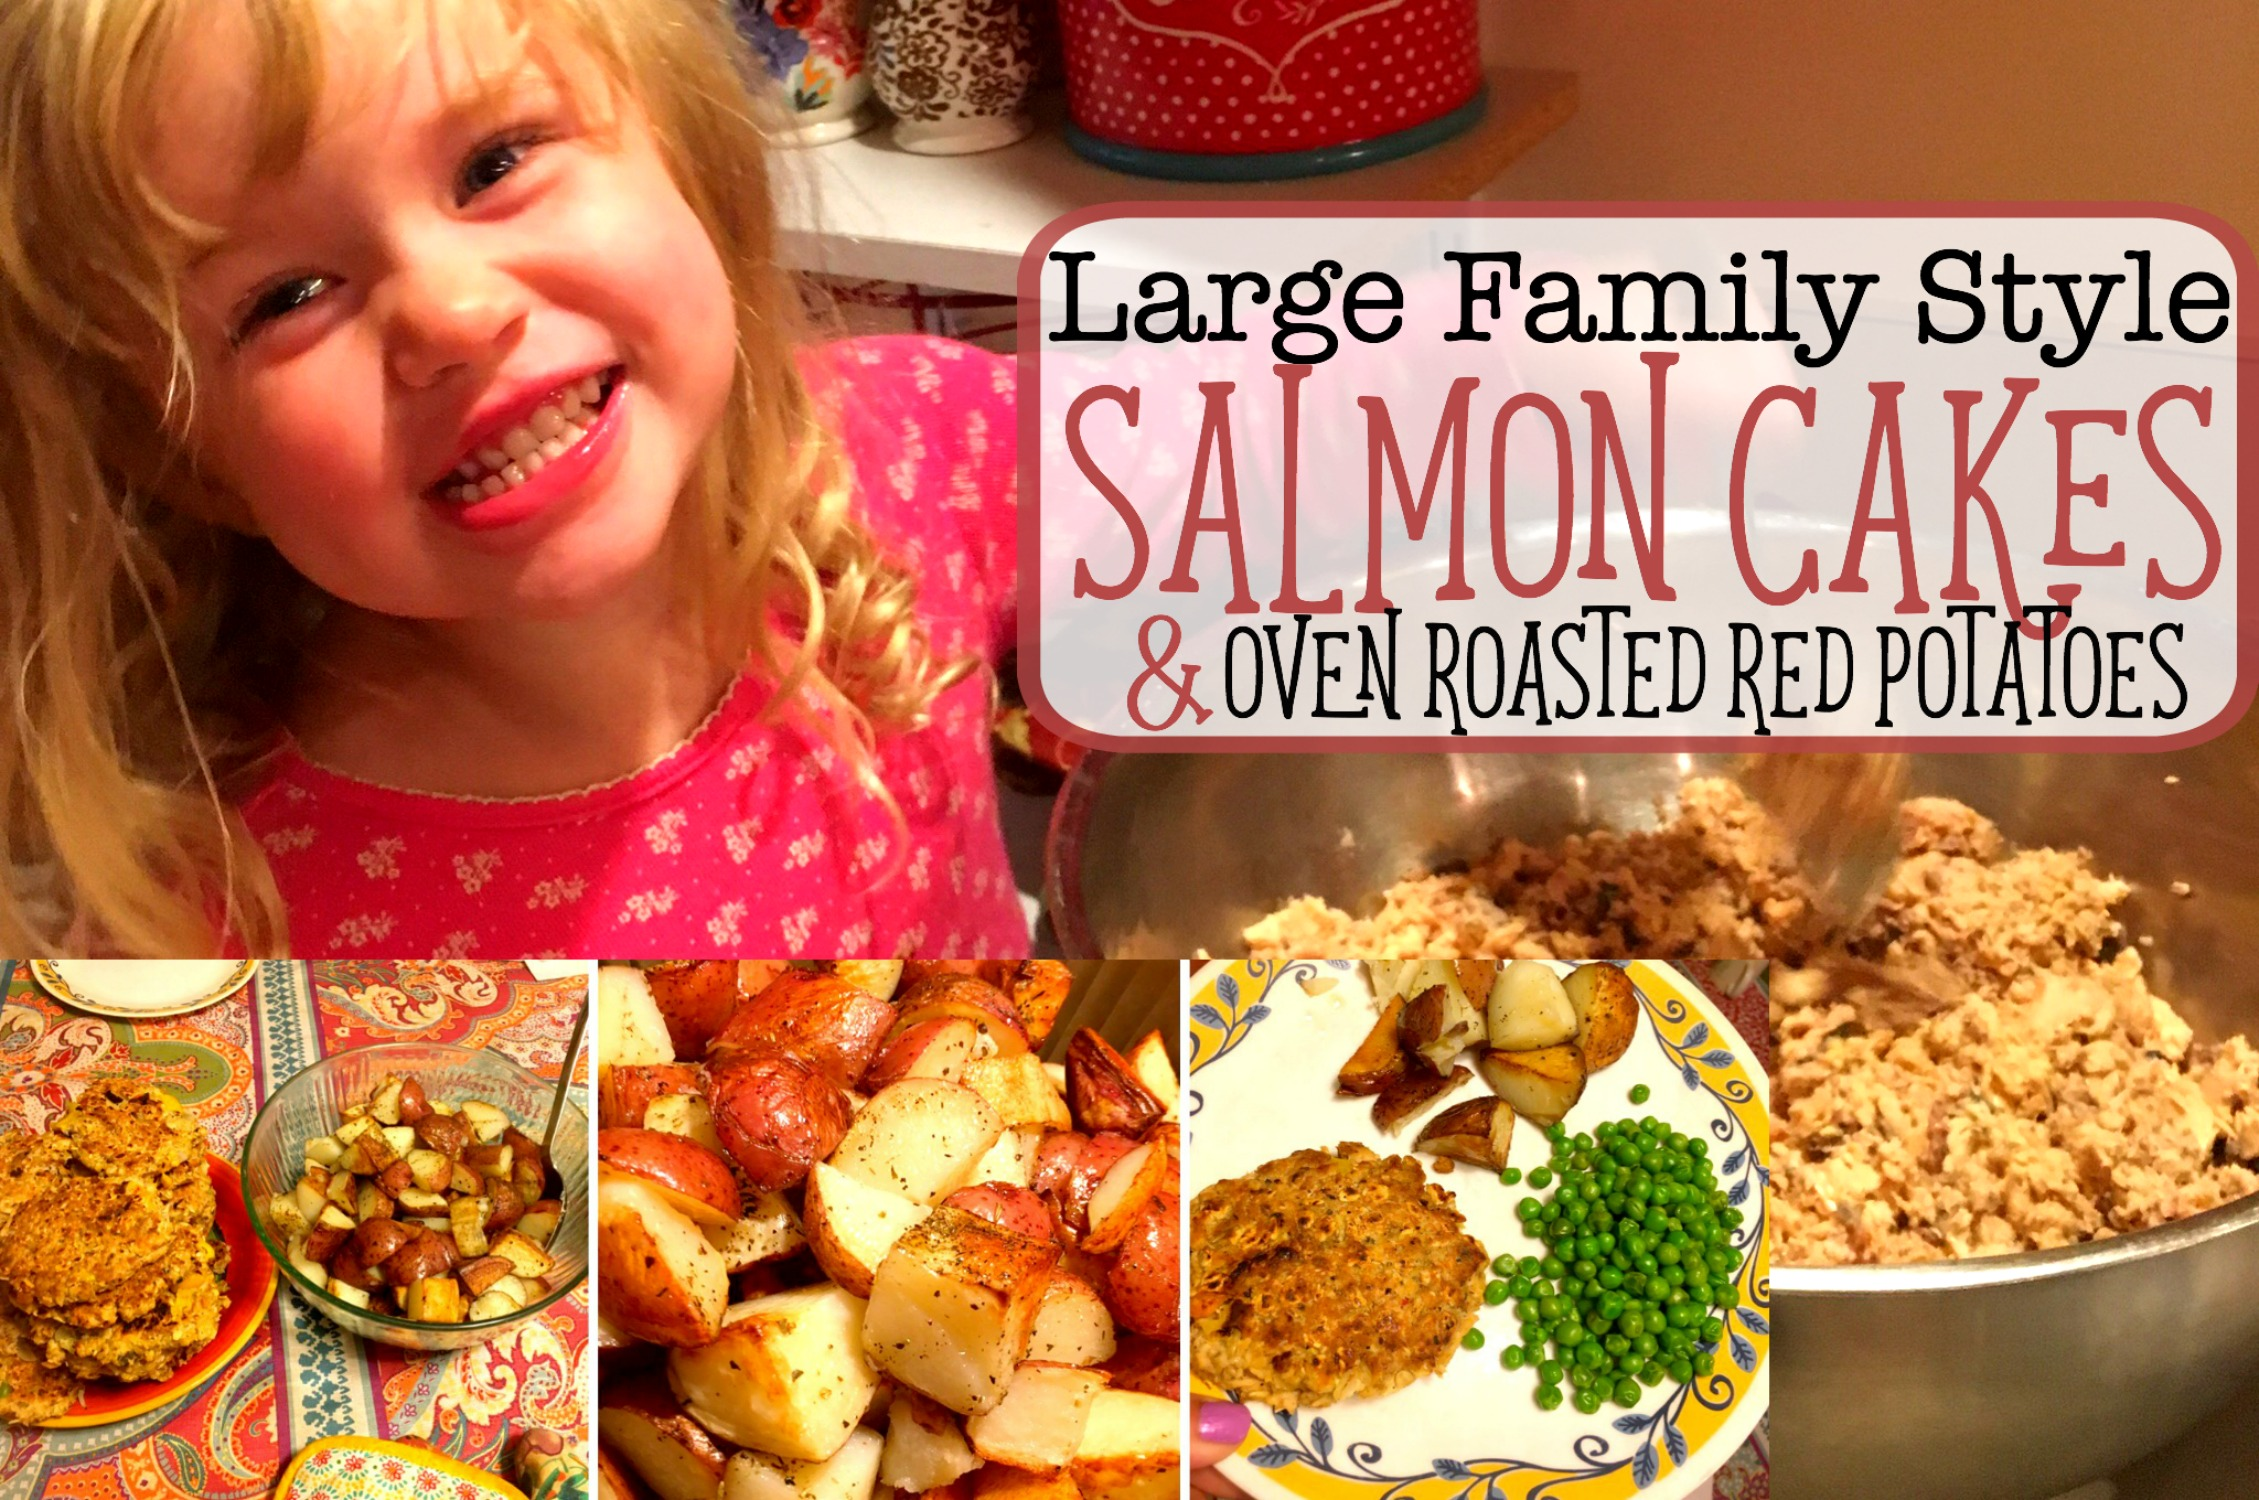 Salmon Cakes Recipe and Oven Roasted Red Potatoes | Large Family Style!